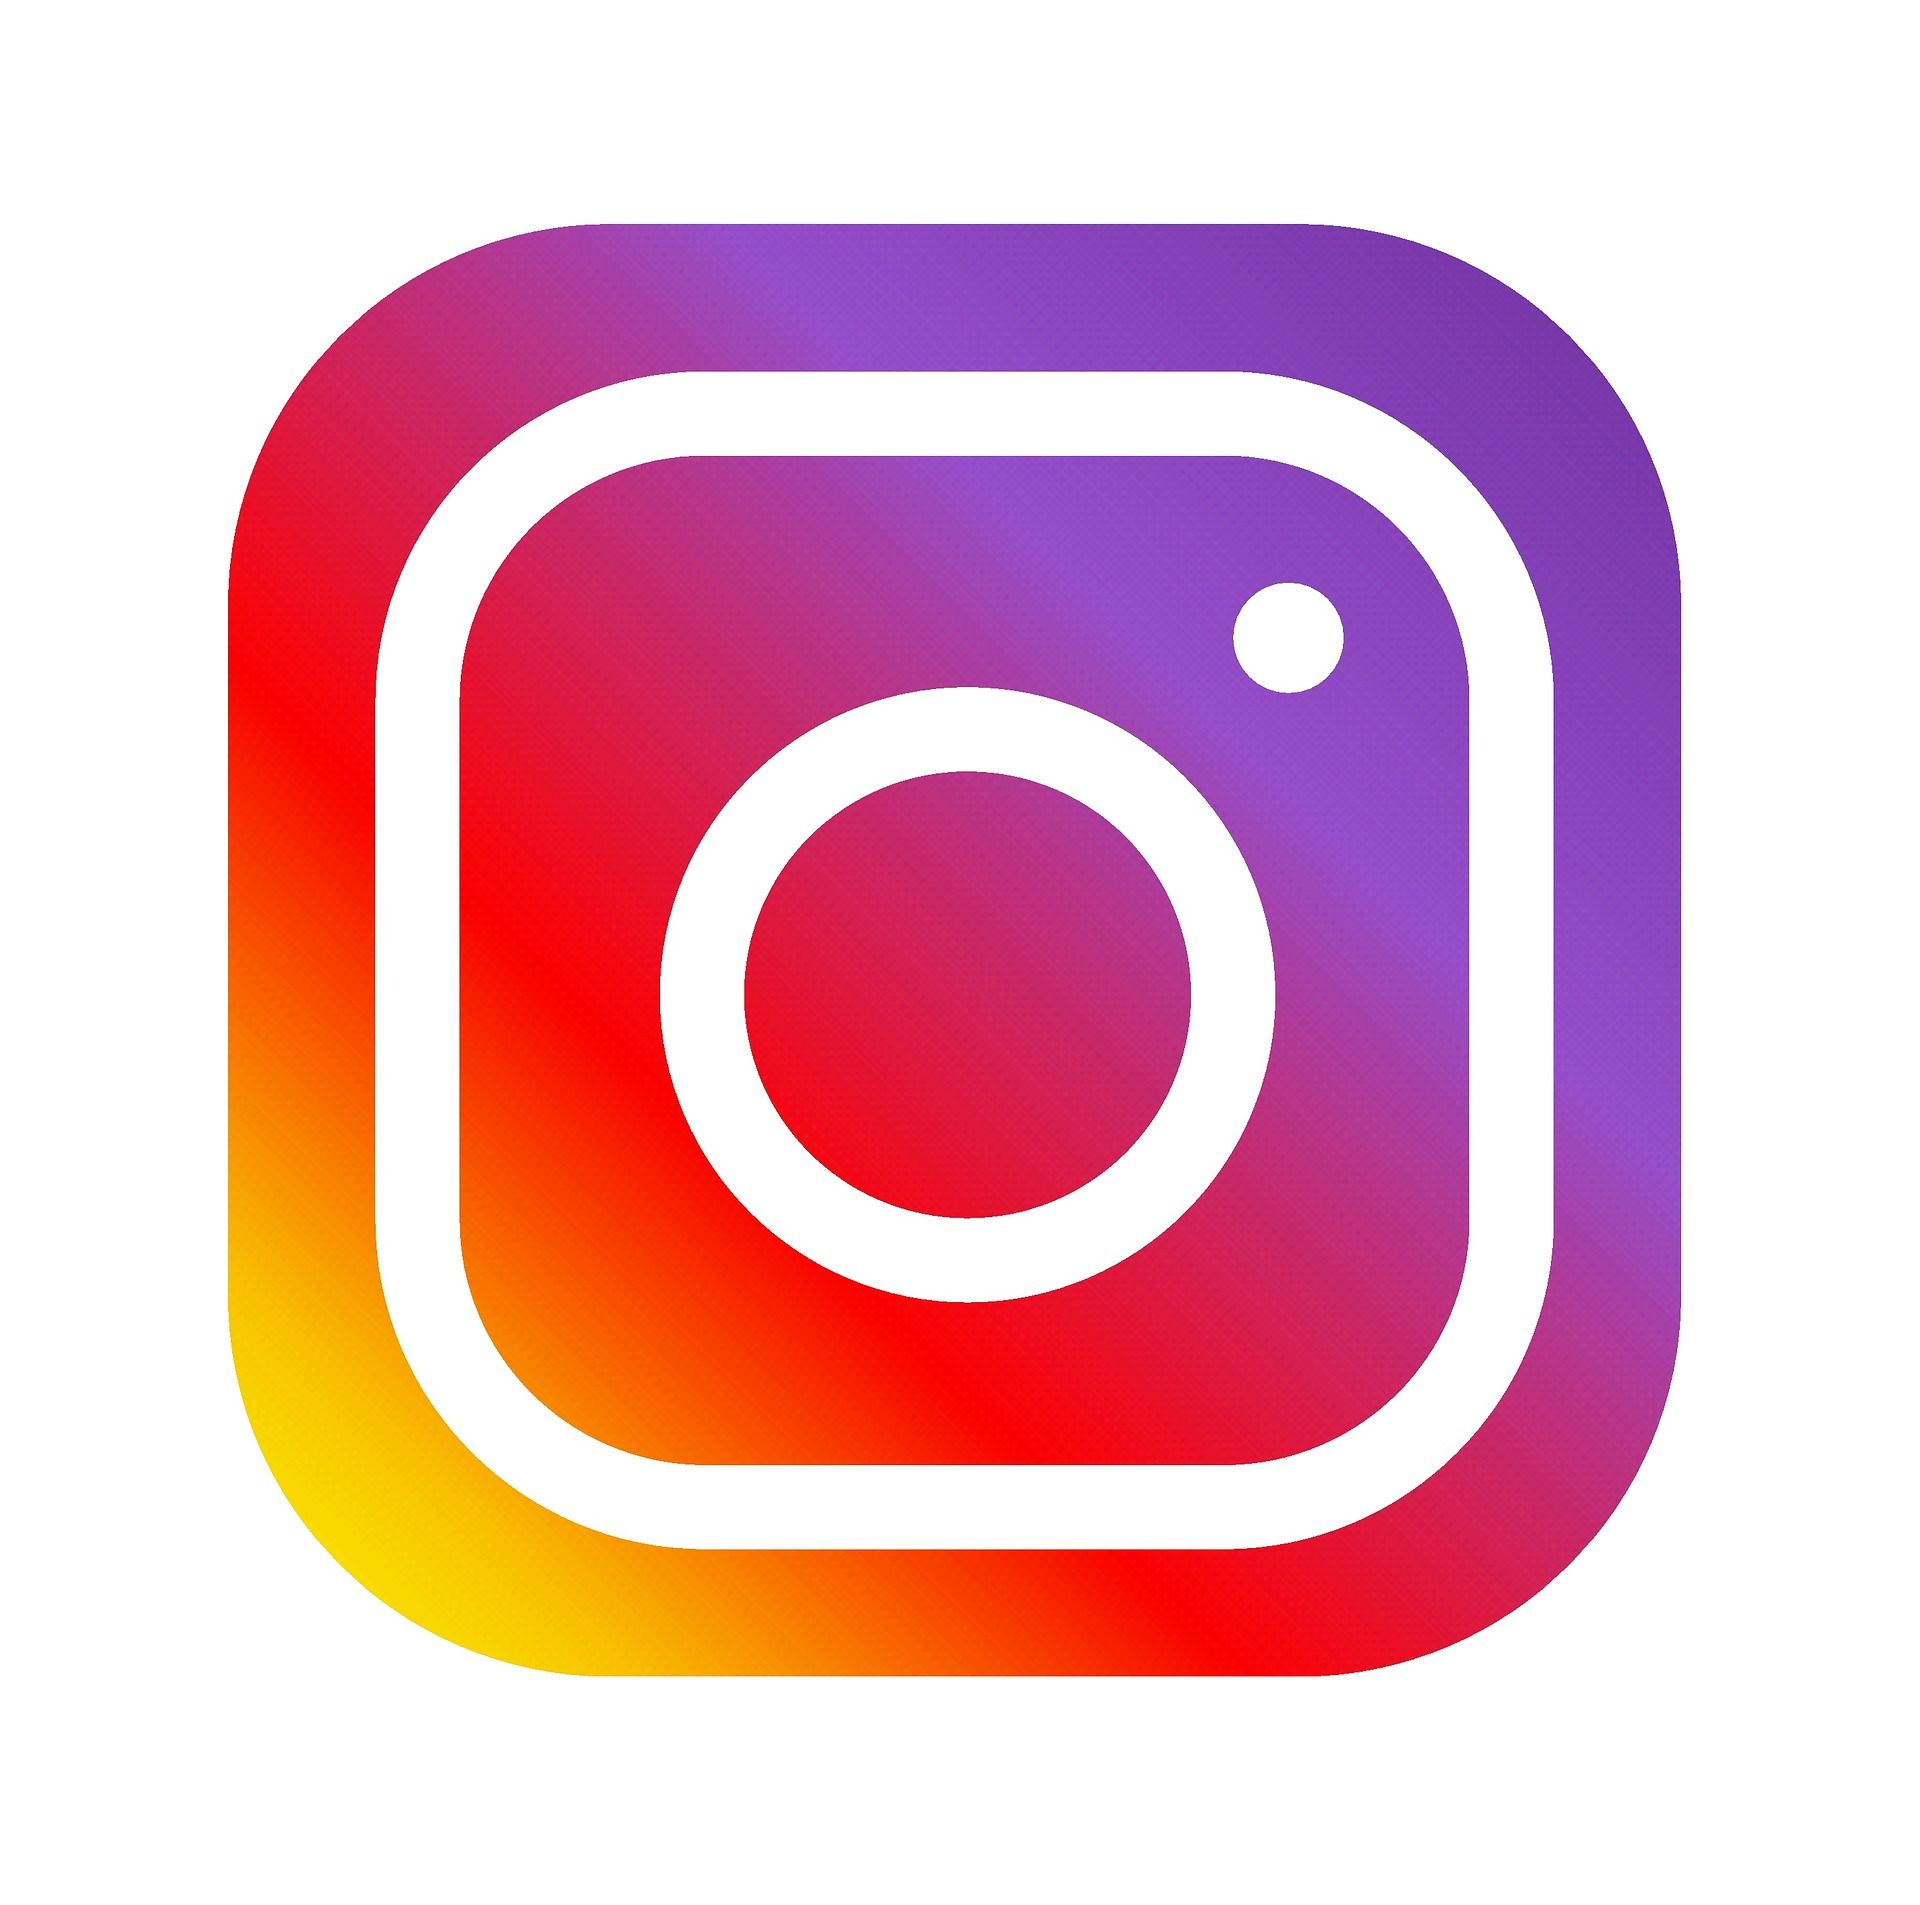 Viral News Website Needs A Playful Logo: Follwo Our Instagram Page For Pictures Of Company Events